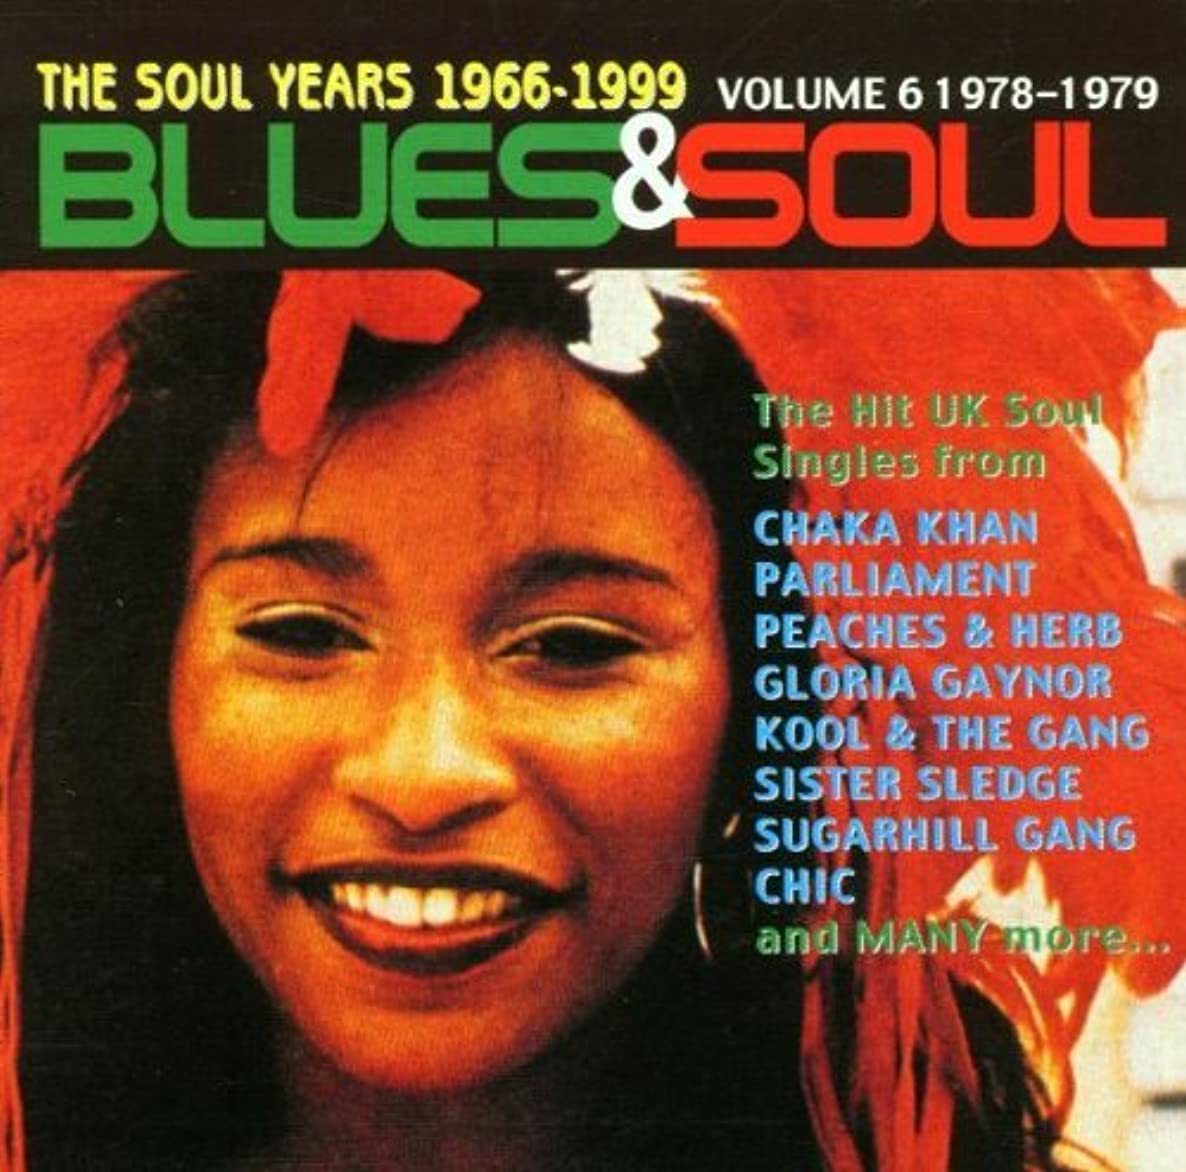 Blues & Soul Vol 6 by Various Artists (2001-04-02)